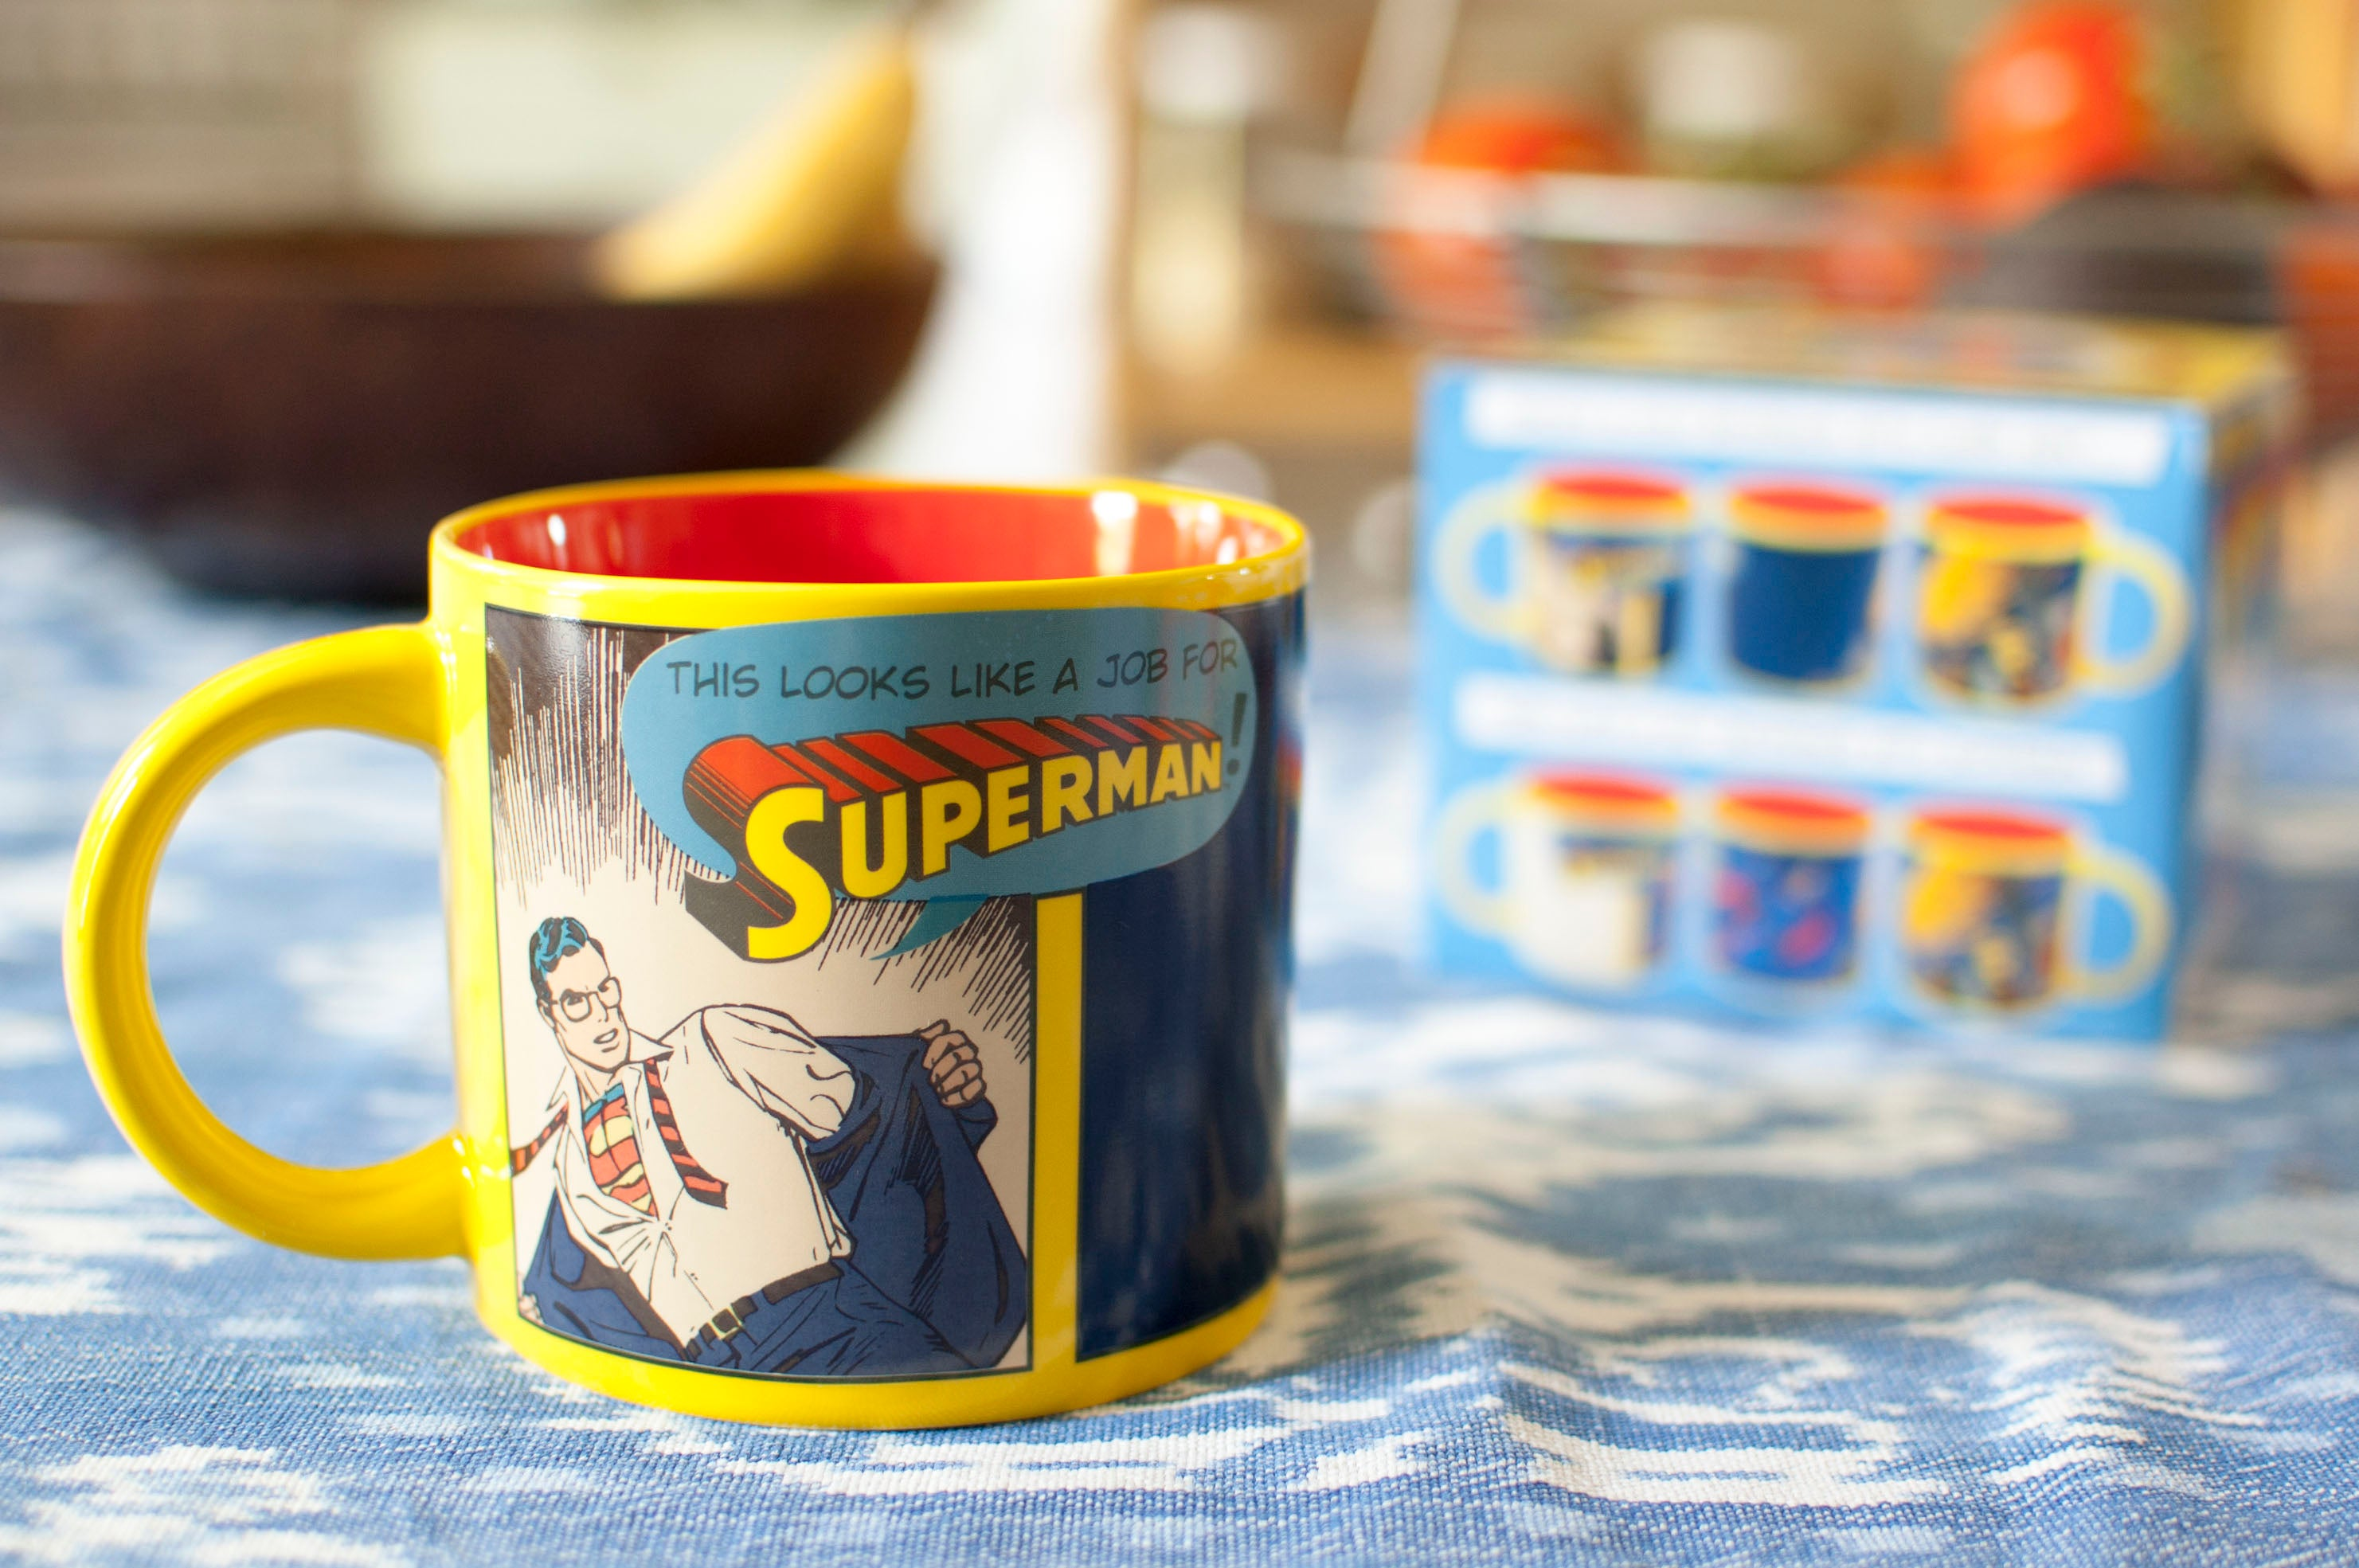 Superman, Job for